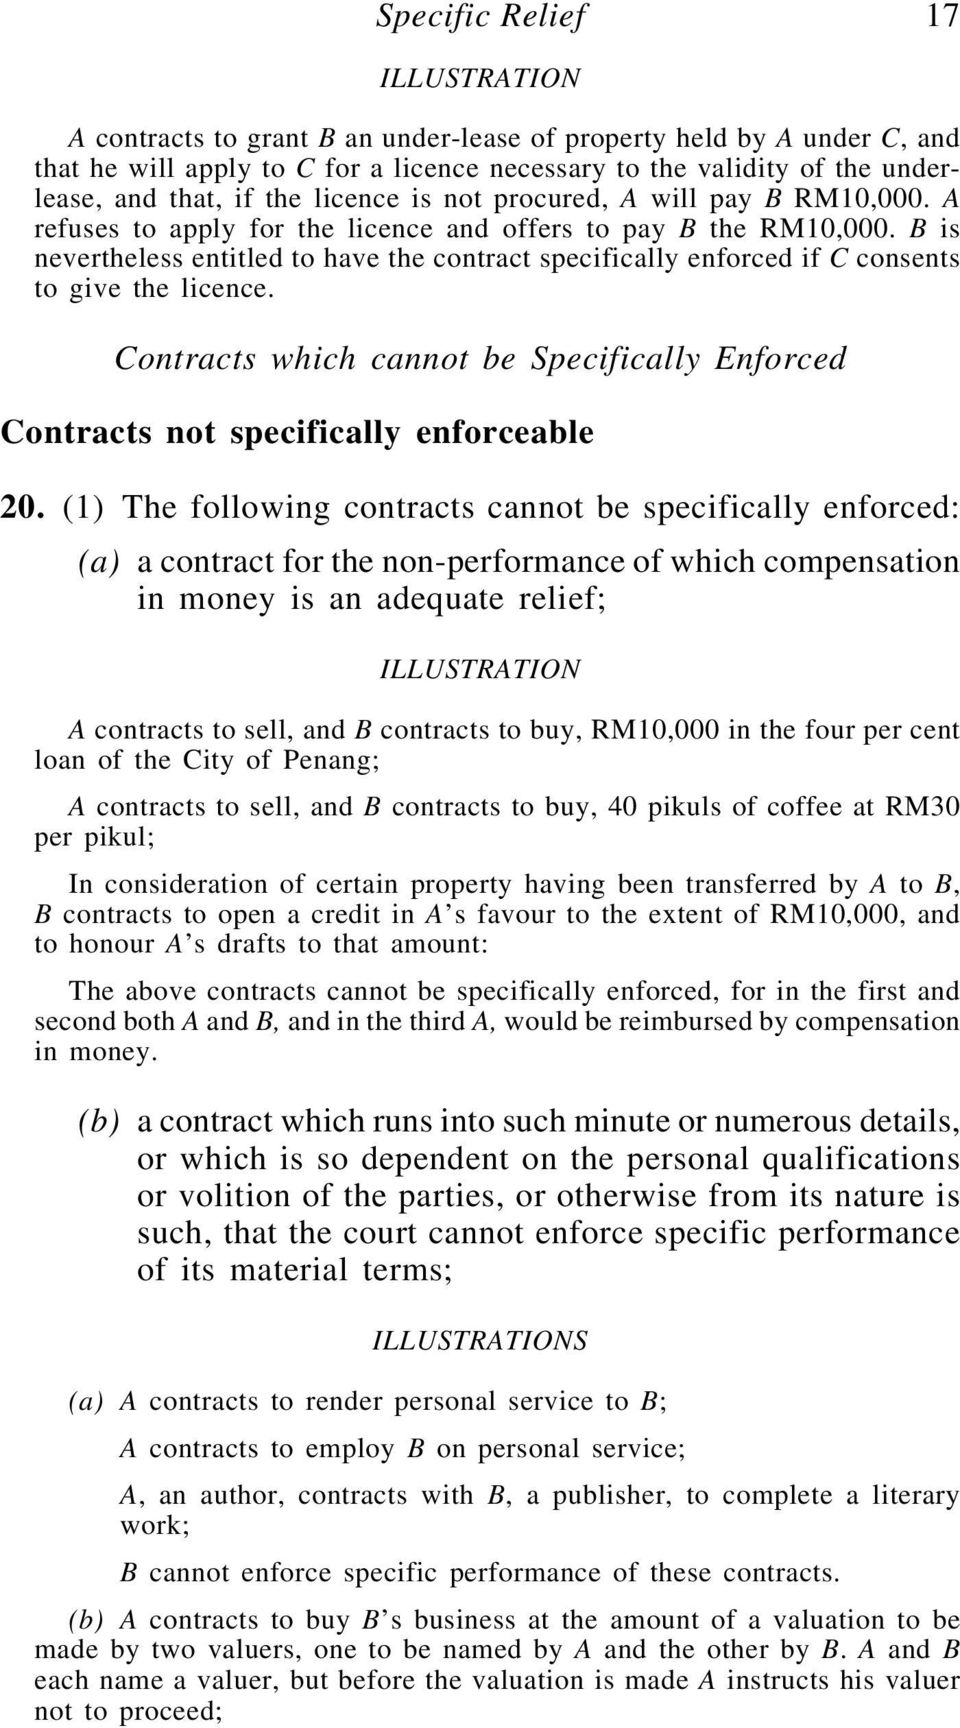 specifically enforceable contract